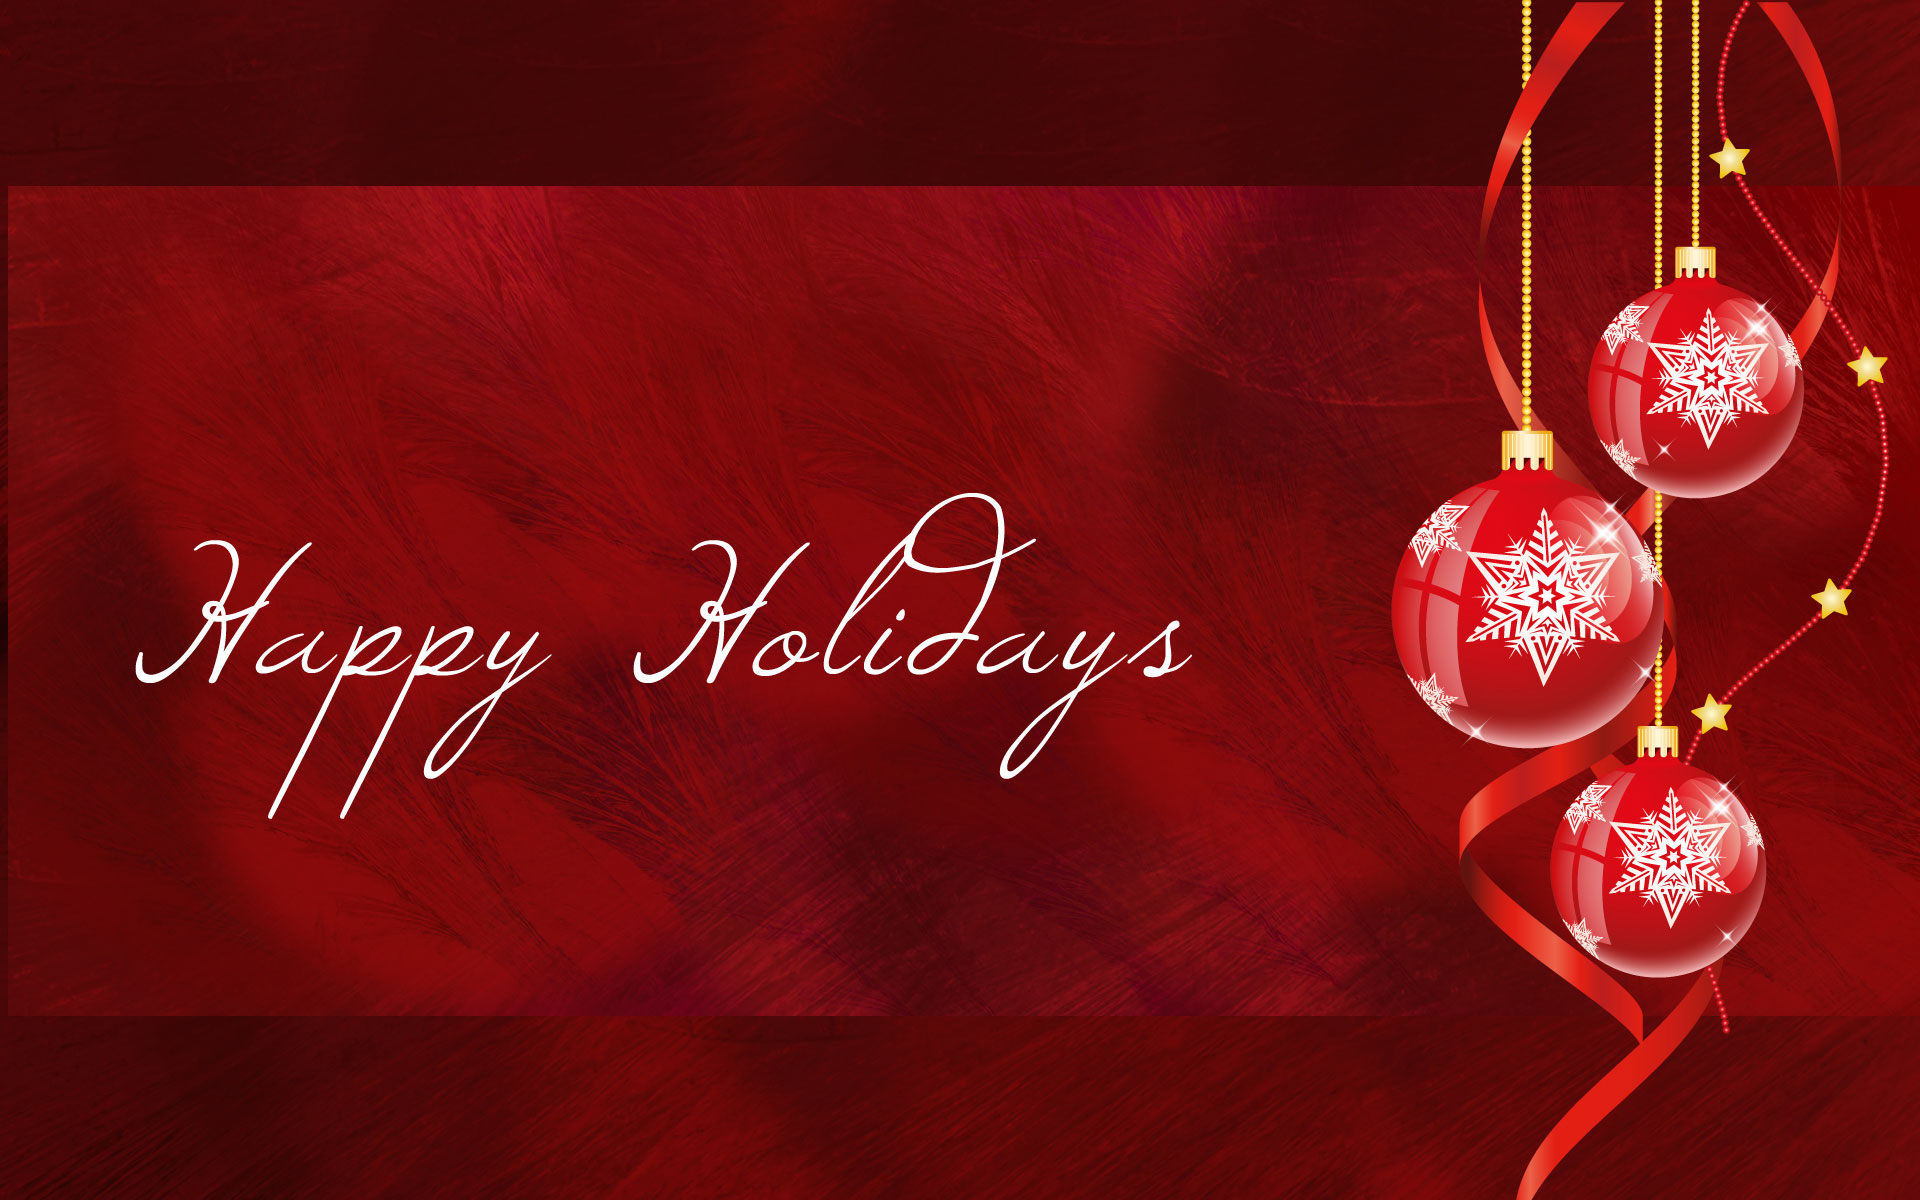 Happy Holidays – Wallpapers